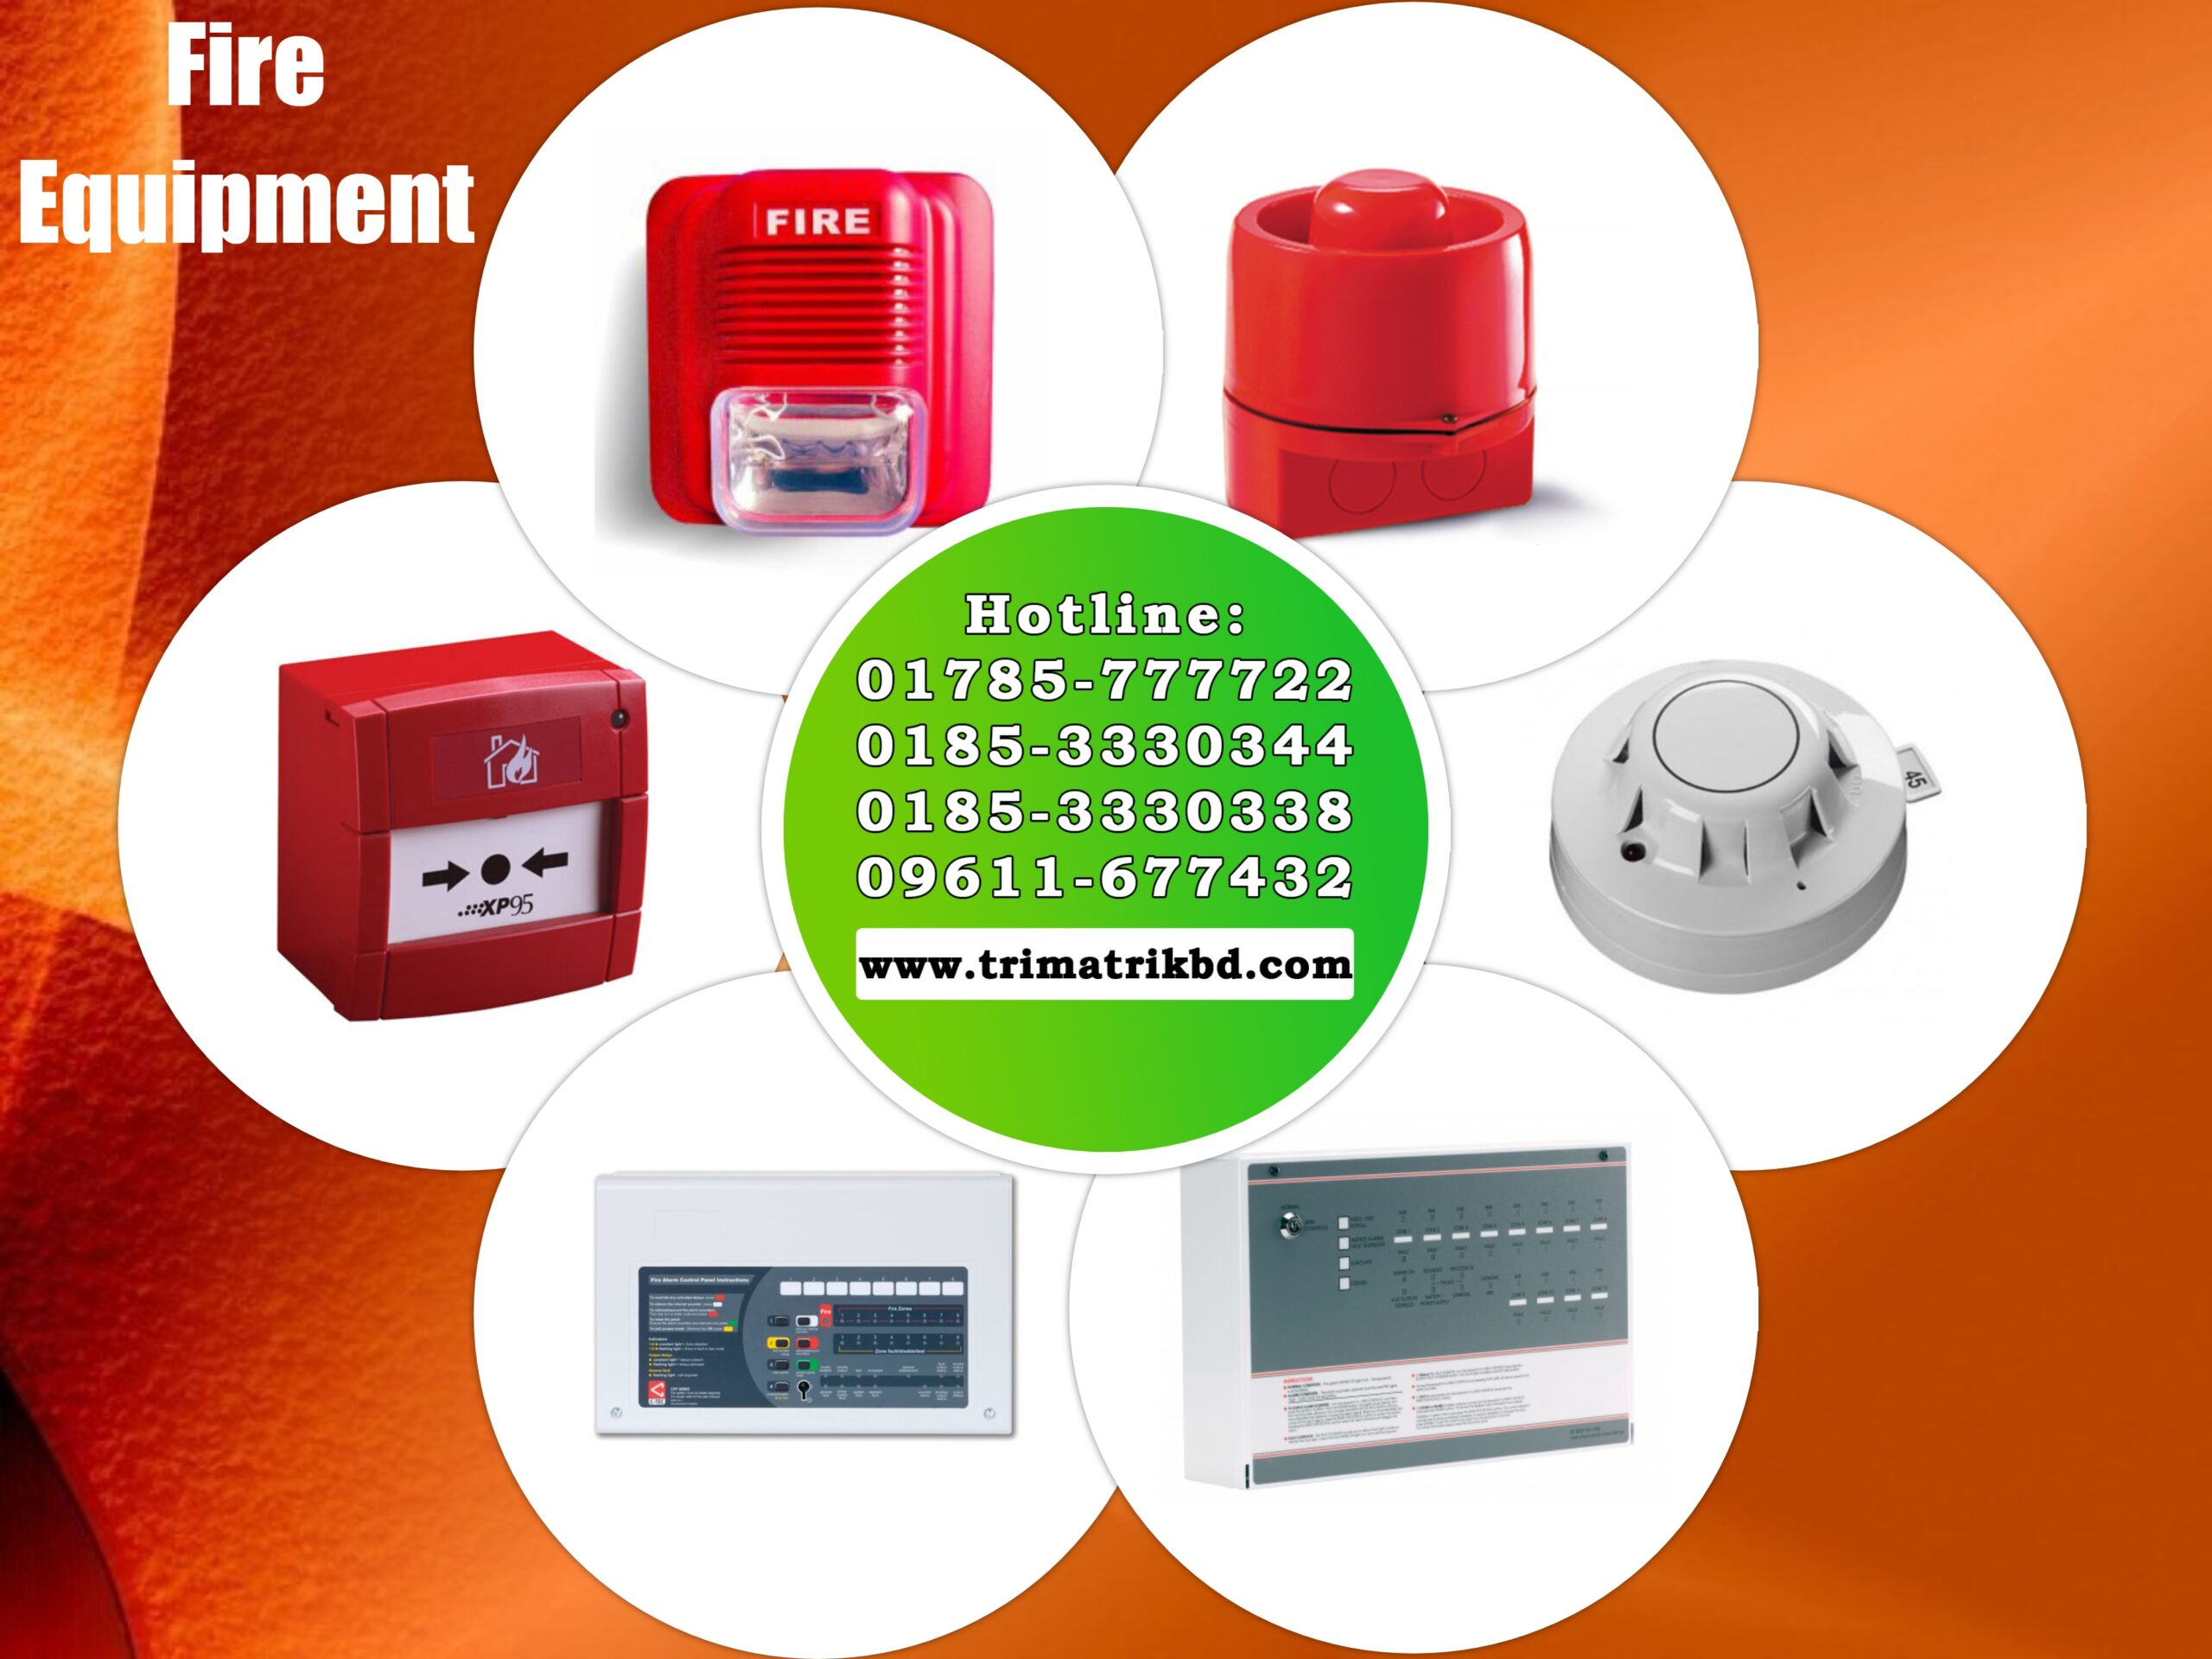 Fire Alarm, Fire Extinguisher, AFO Fire Ball, Smoke Detector Supplier in Bangladesh